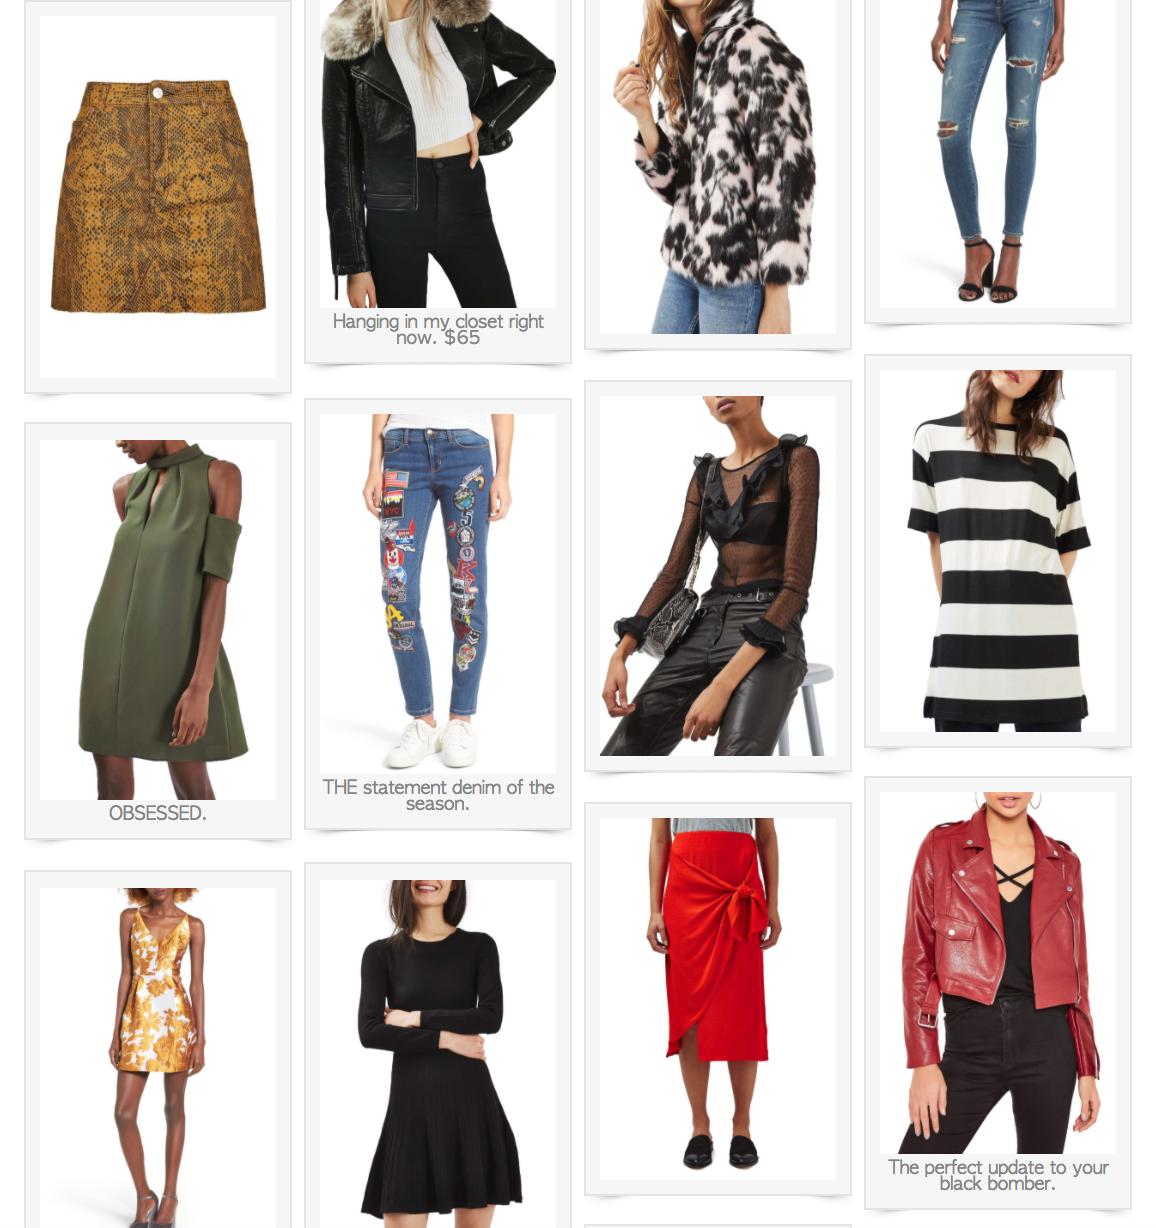 Sale Round-Up: 40% off Nordstrom Trend